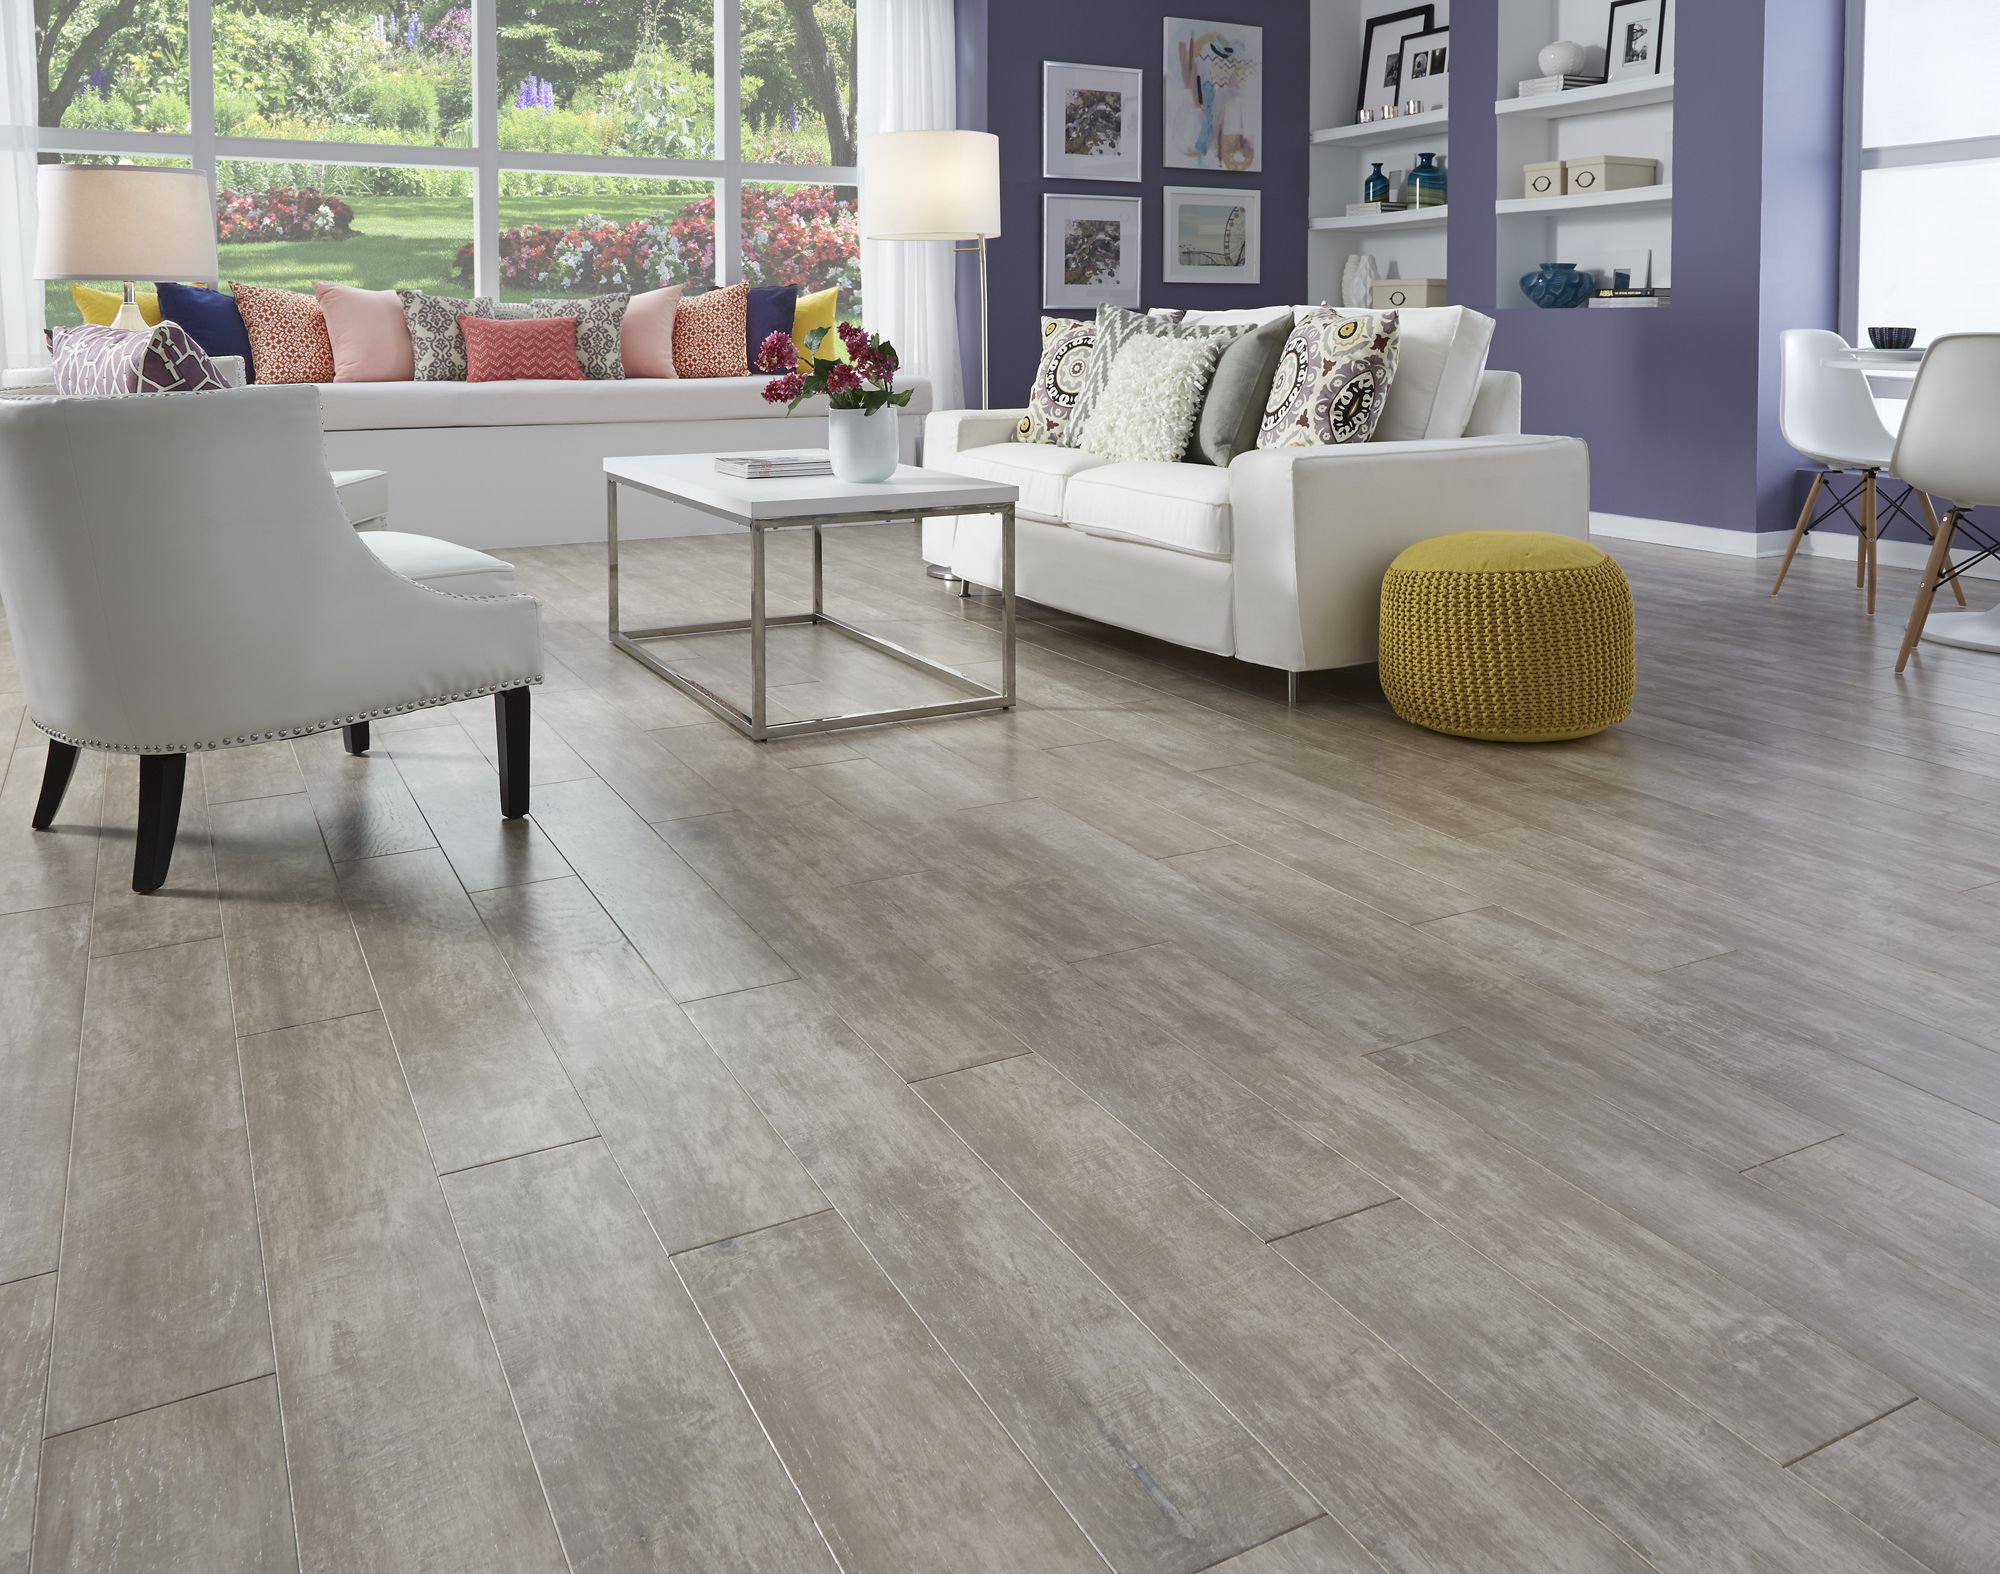 Stonewashed Linen Oak Distressed Hardwood Flooring Oak